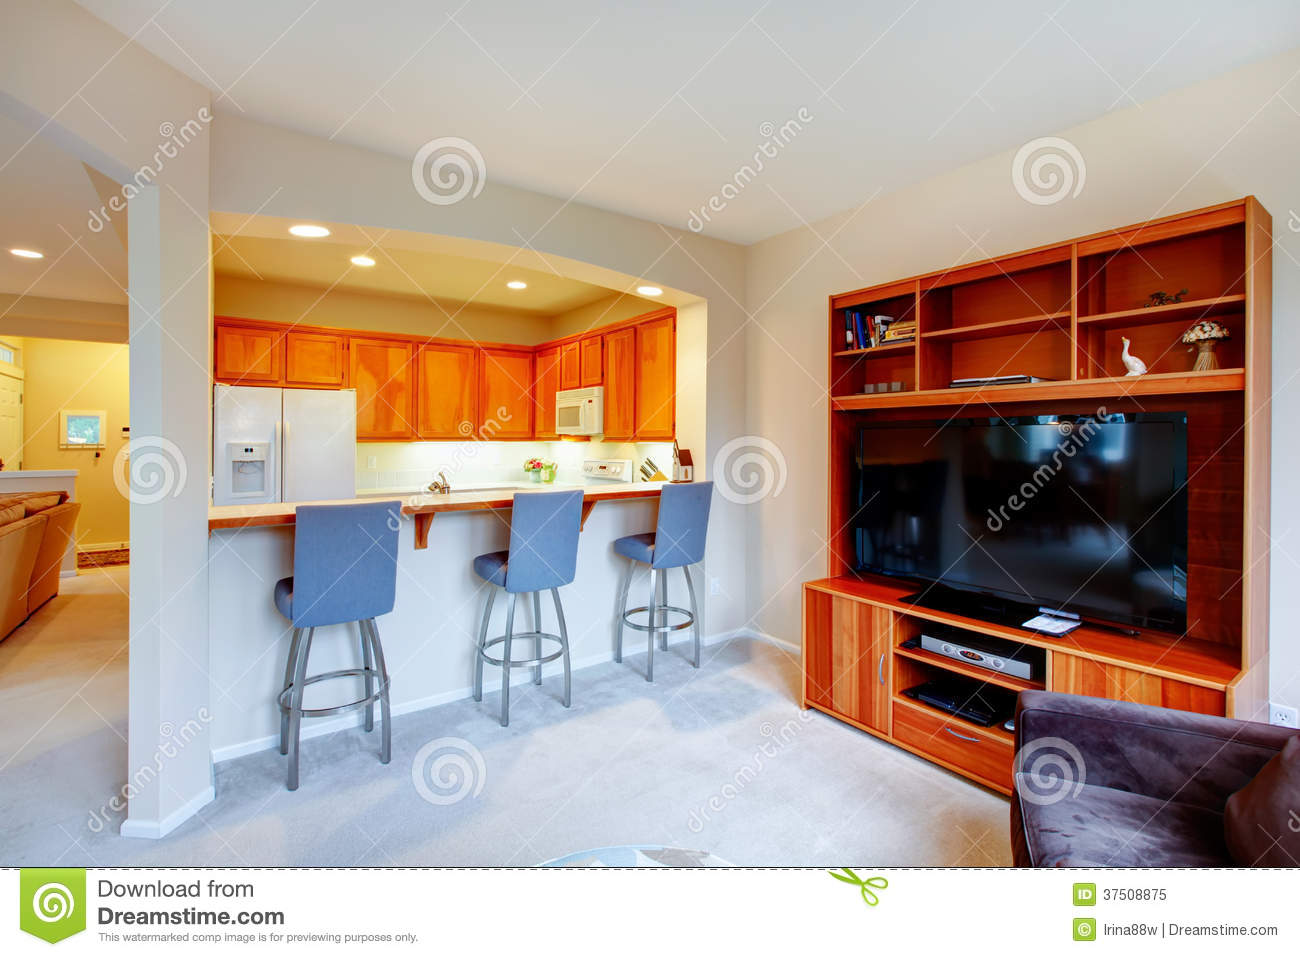 great design for house with an open wall between kitchen and li stock image image of brown. Black Bedroom Furniture Sets. Home Design Ideas